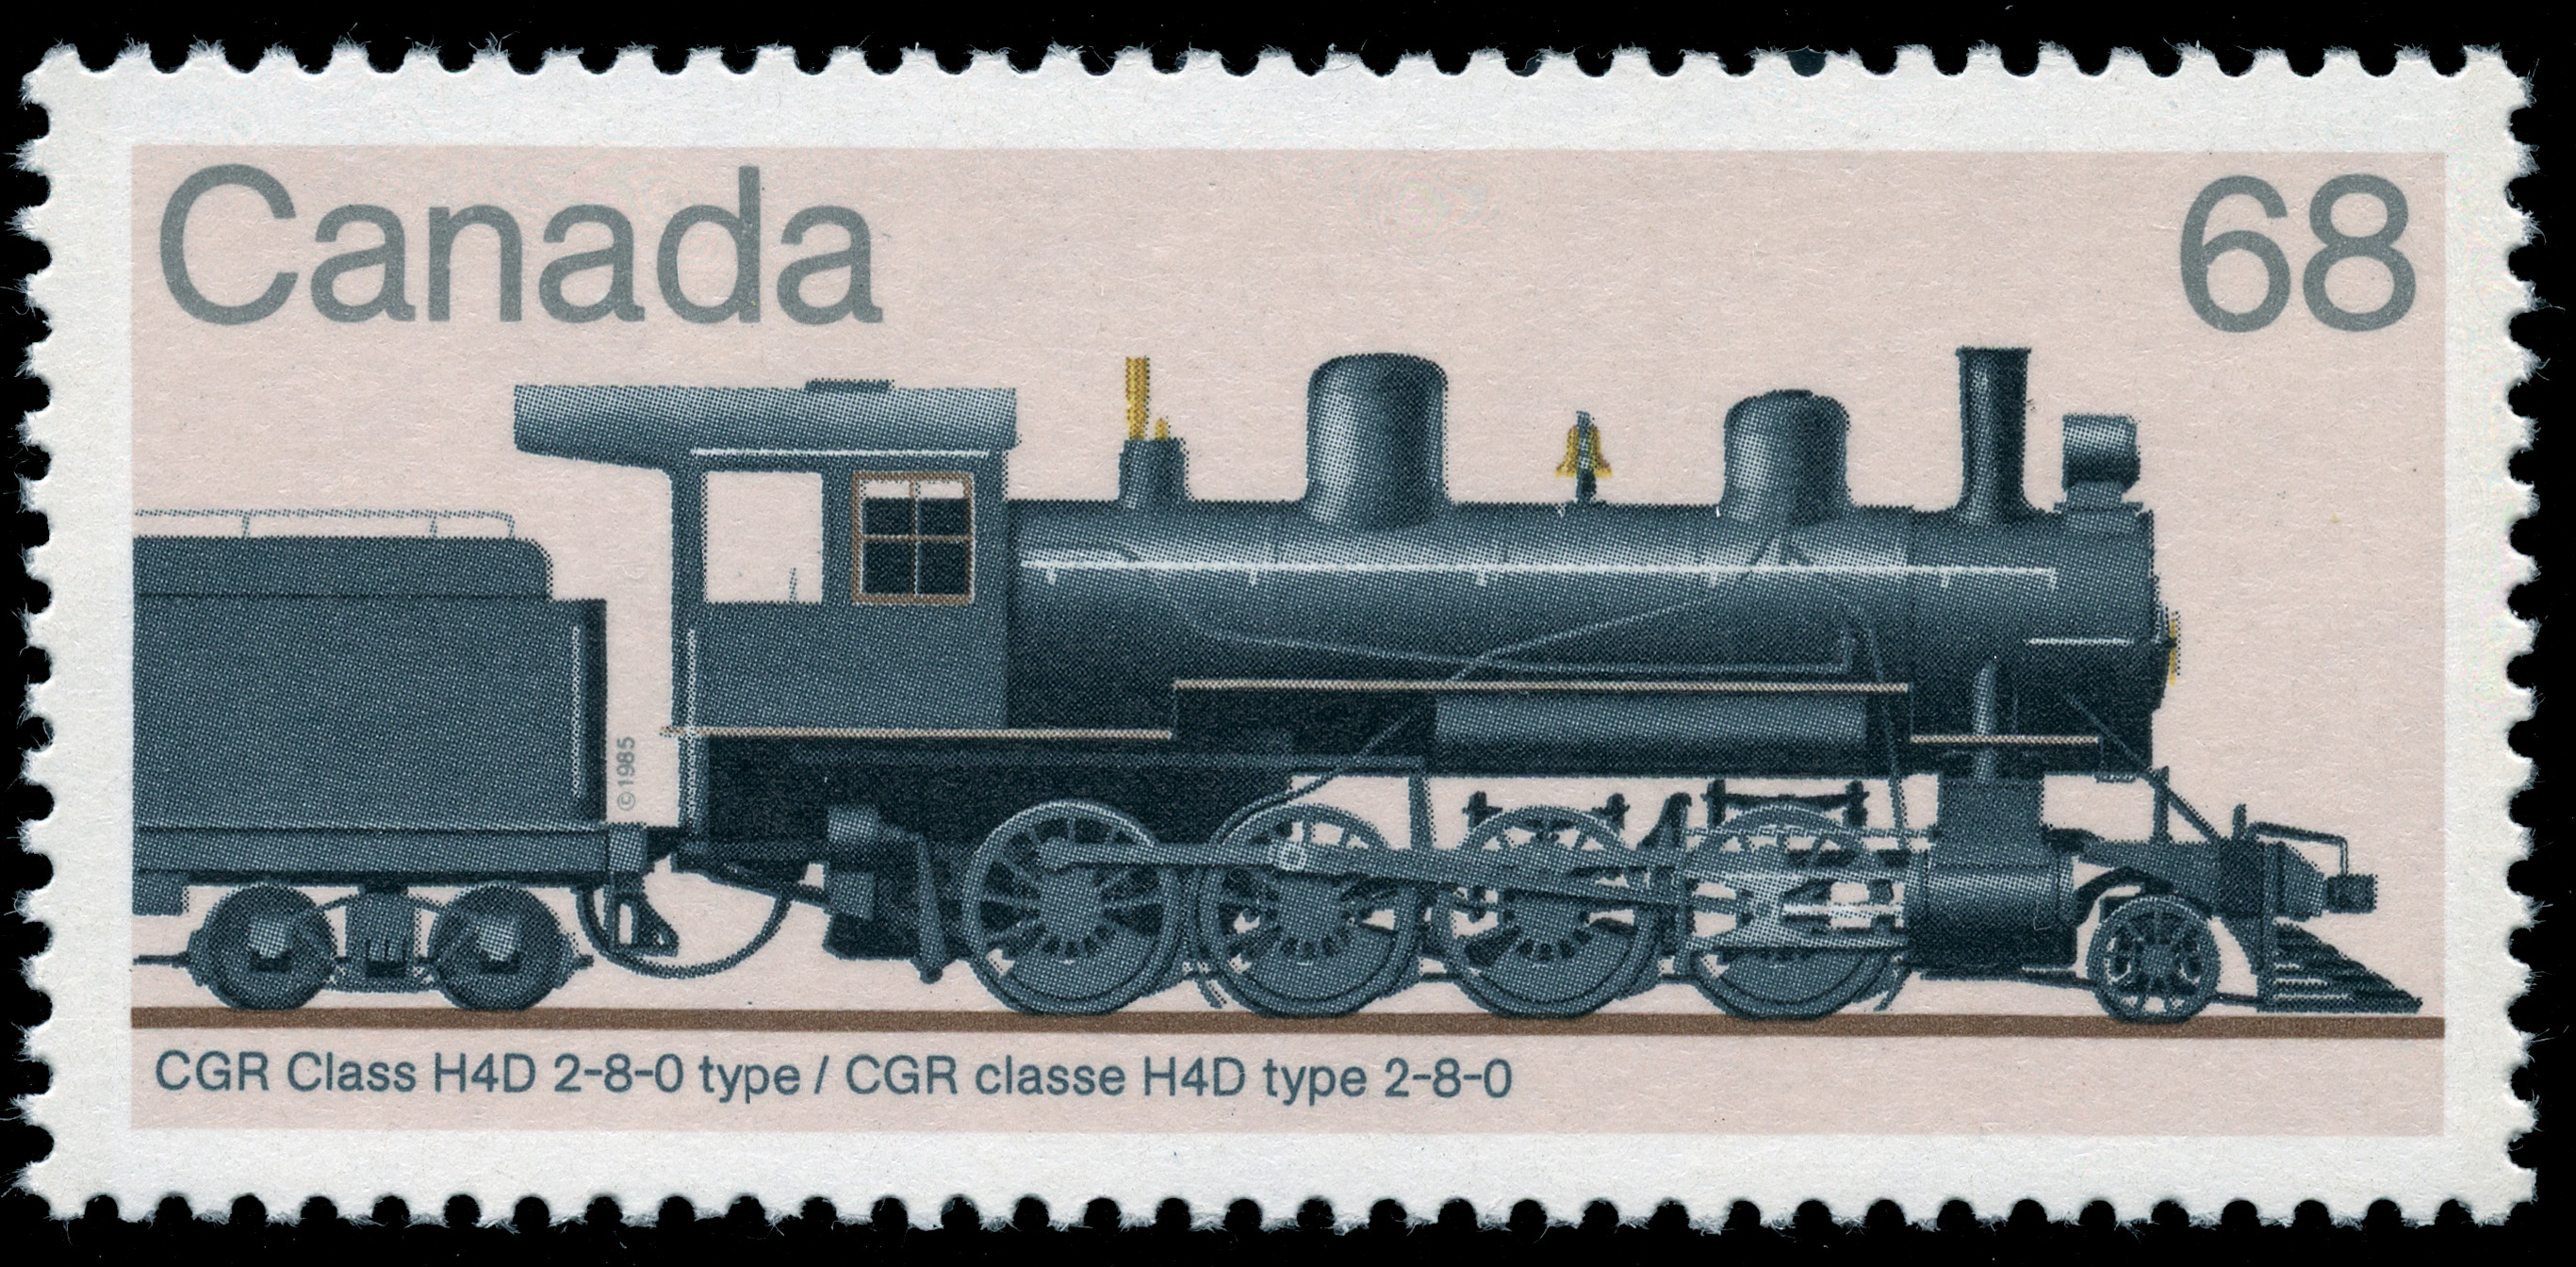 CGR Class H4D 2-8-0 Type Canada Postage Stamp